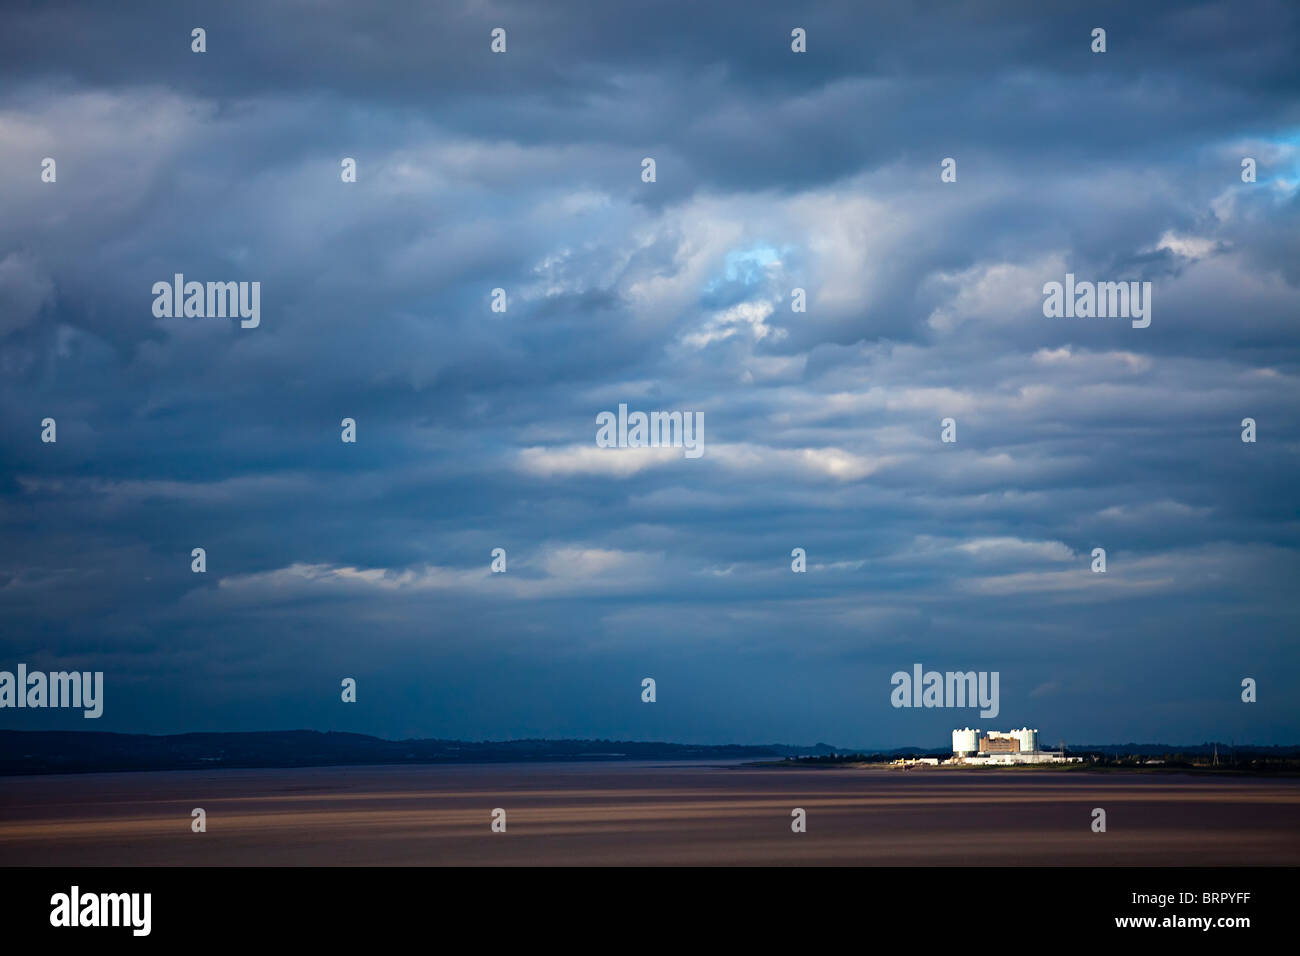 Oldbury Nuclear Power Station Severn Estuary England UK - Stock Image